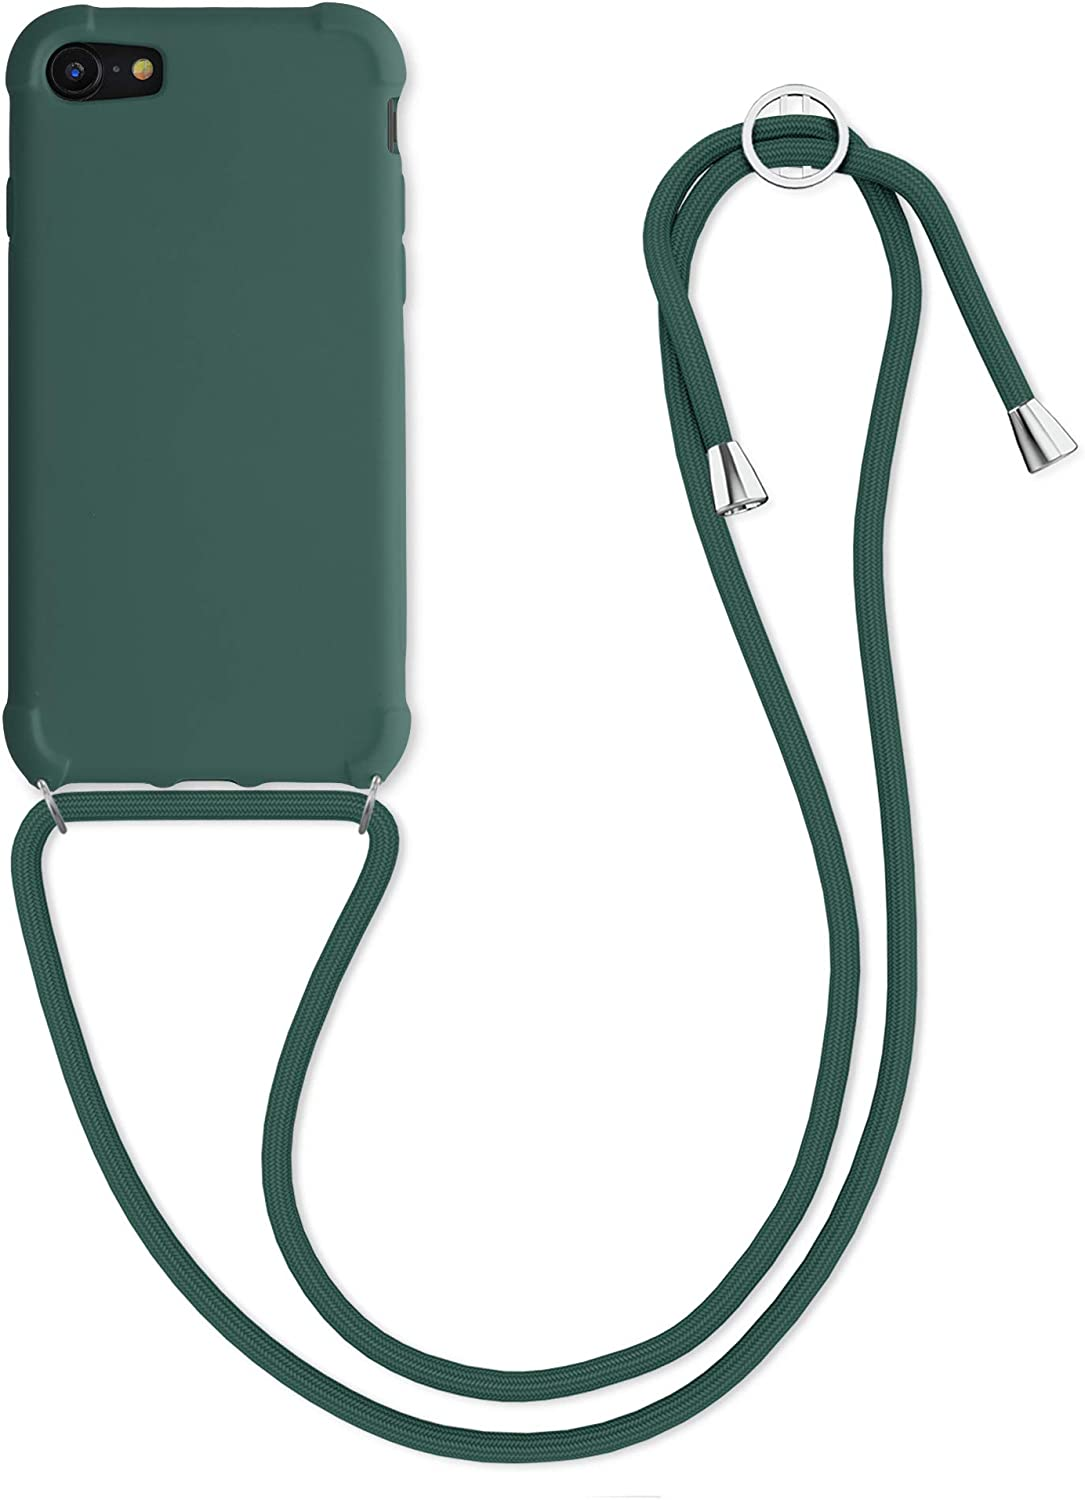 kwmobile Case Compatible with Apple iPhone 7/8 / SE (2020) - Crossbody Case Soft Matte TPU Phone Holder with Neck Strap - Dark Green